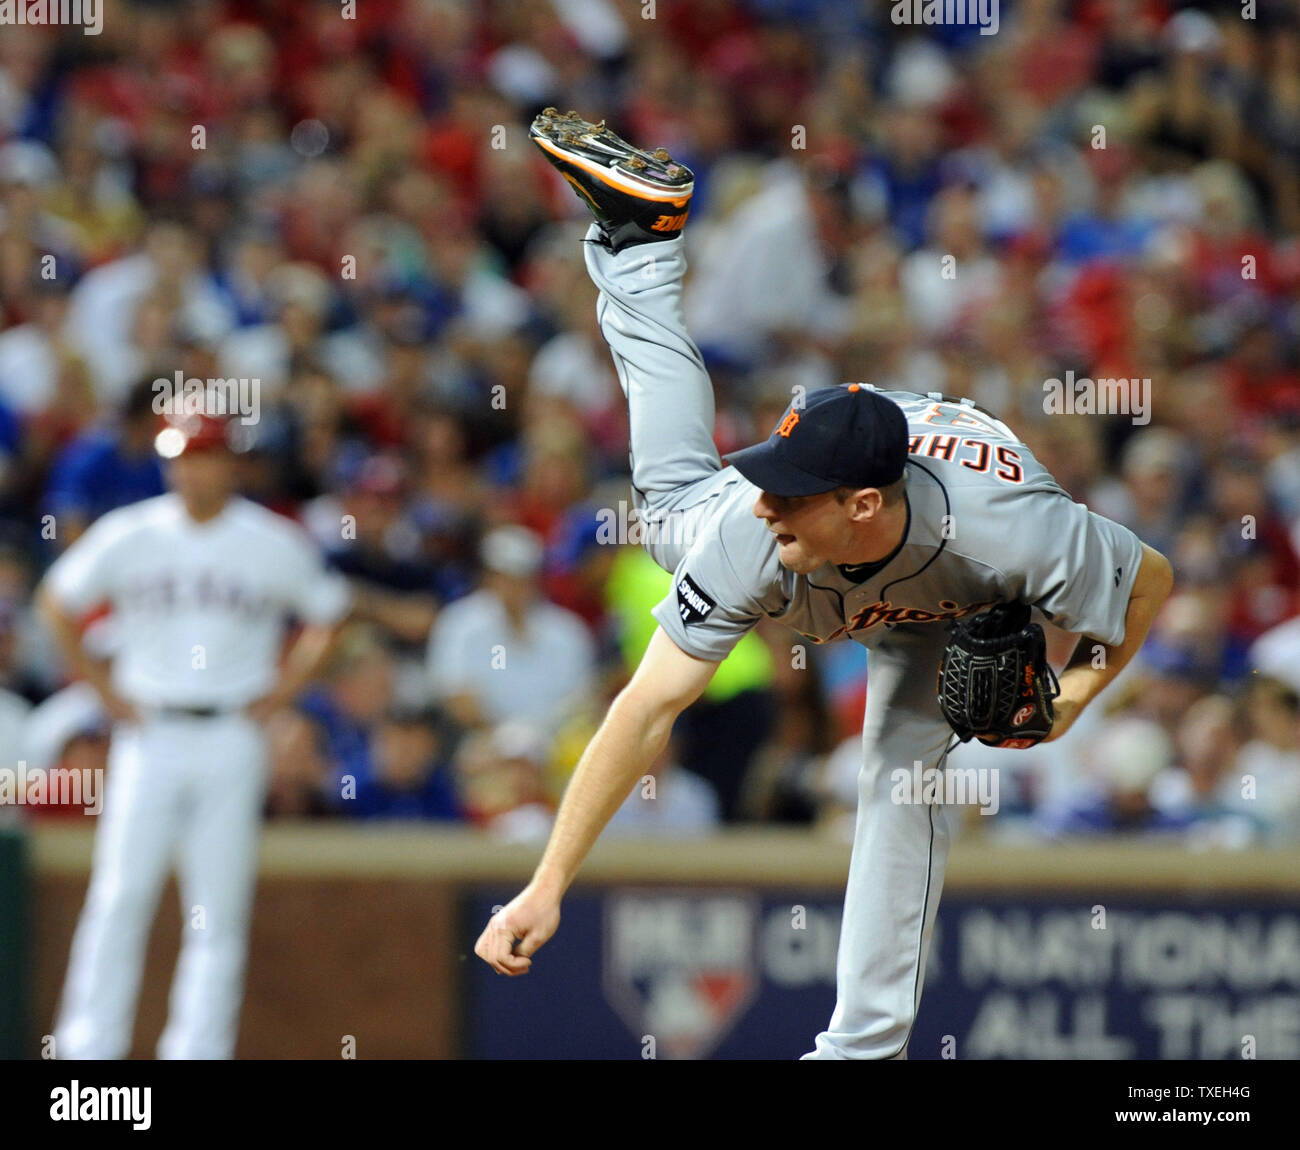 Detroit Tigers starting pitcher Max Scherzer throws against the Texas Rangers in game six of the ALCS at Rangers Ballpark in Arlington on October 15, 2011 in Arlington, Texas.   The Rangers lead the best of seven series 3-2.    UPI/Ian Halperin Stock Photo